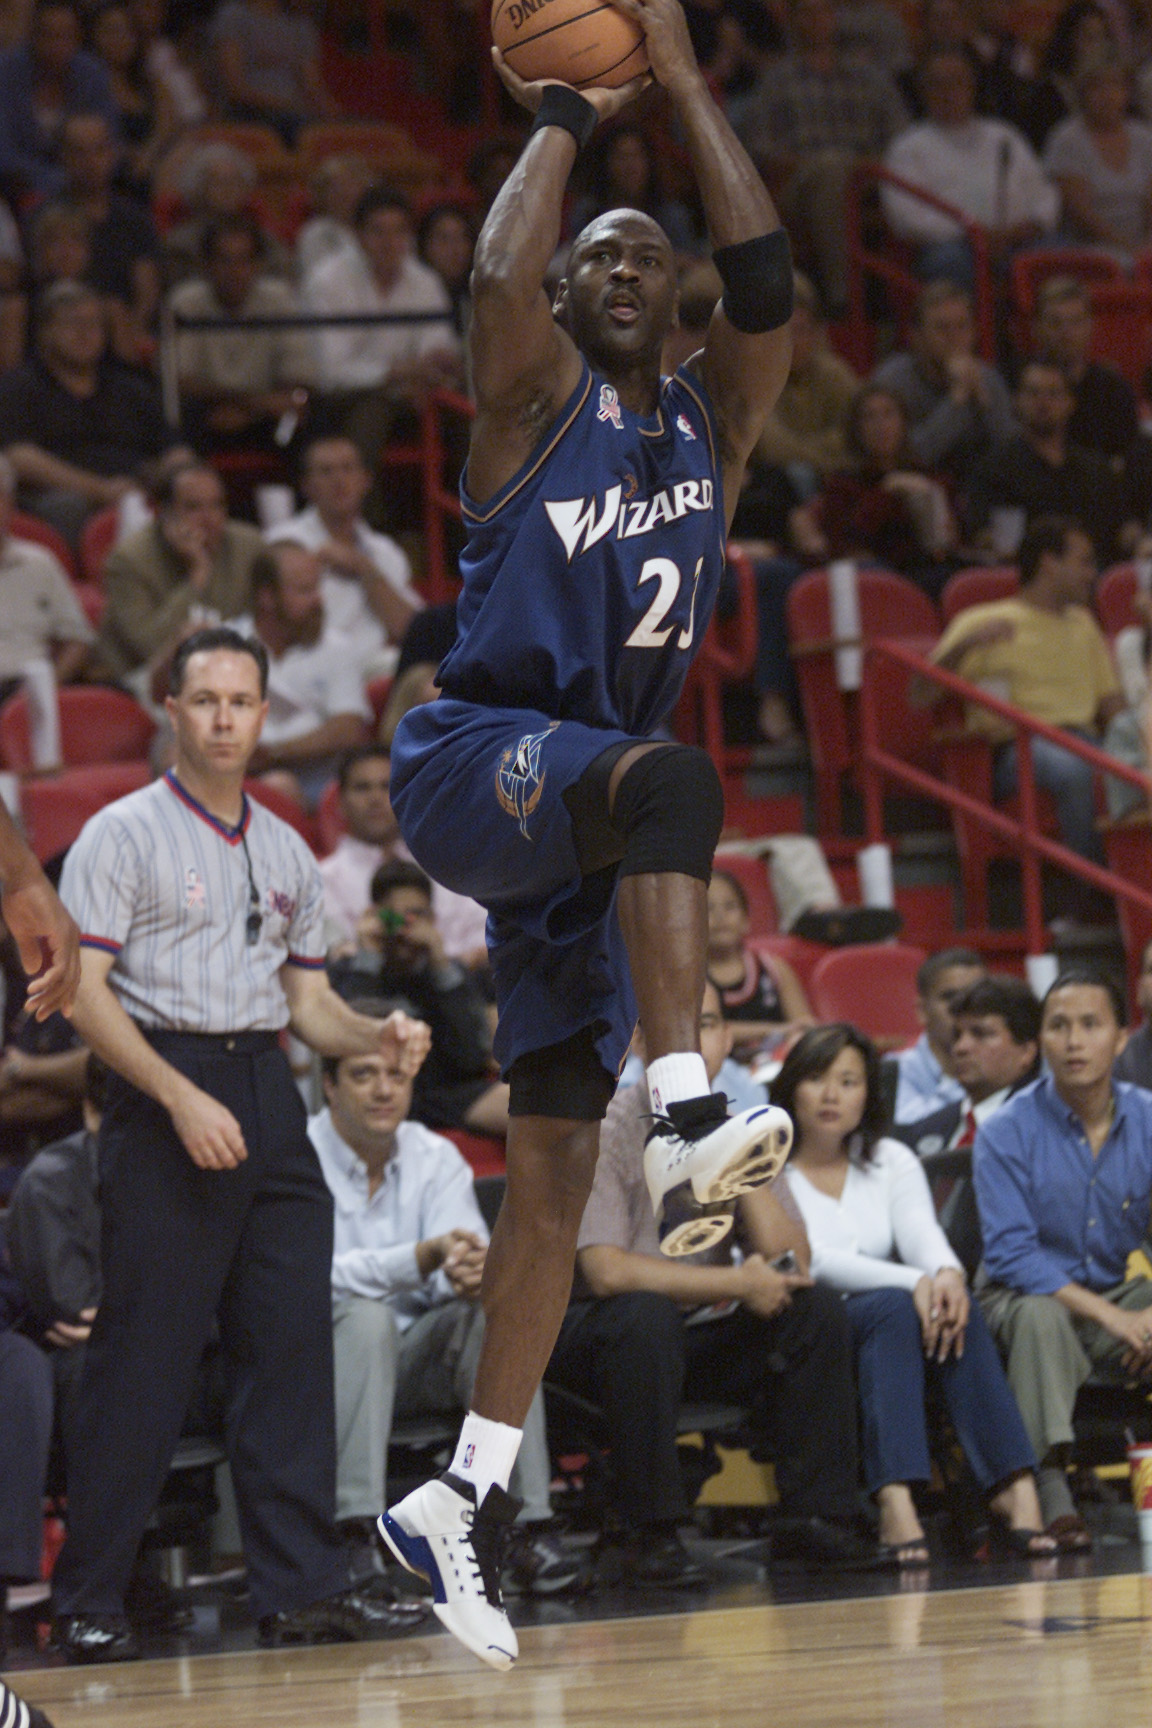 MIAMI - NOVEMBER 30:  Forward Michael Jordan #23 of the Washington Wizards shoots a jump shot during the NBA game against the Miami Heat at American Airlines Arena in Miami, Florida on November 30, 2001.  The Wizards won 84-75.  NOTE TO USER: User express